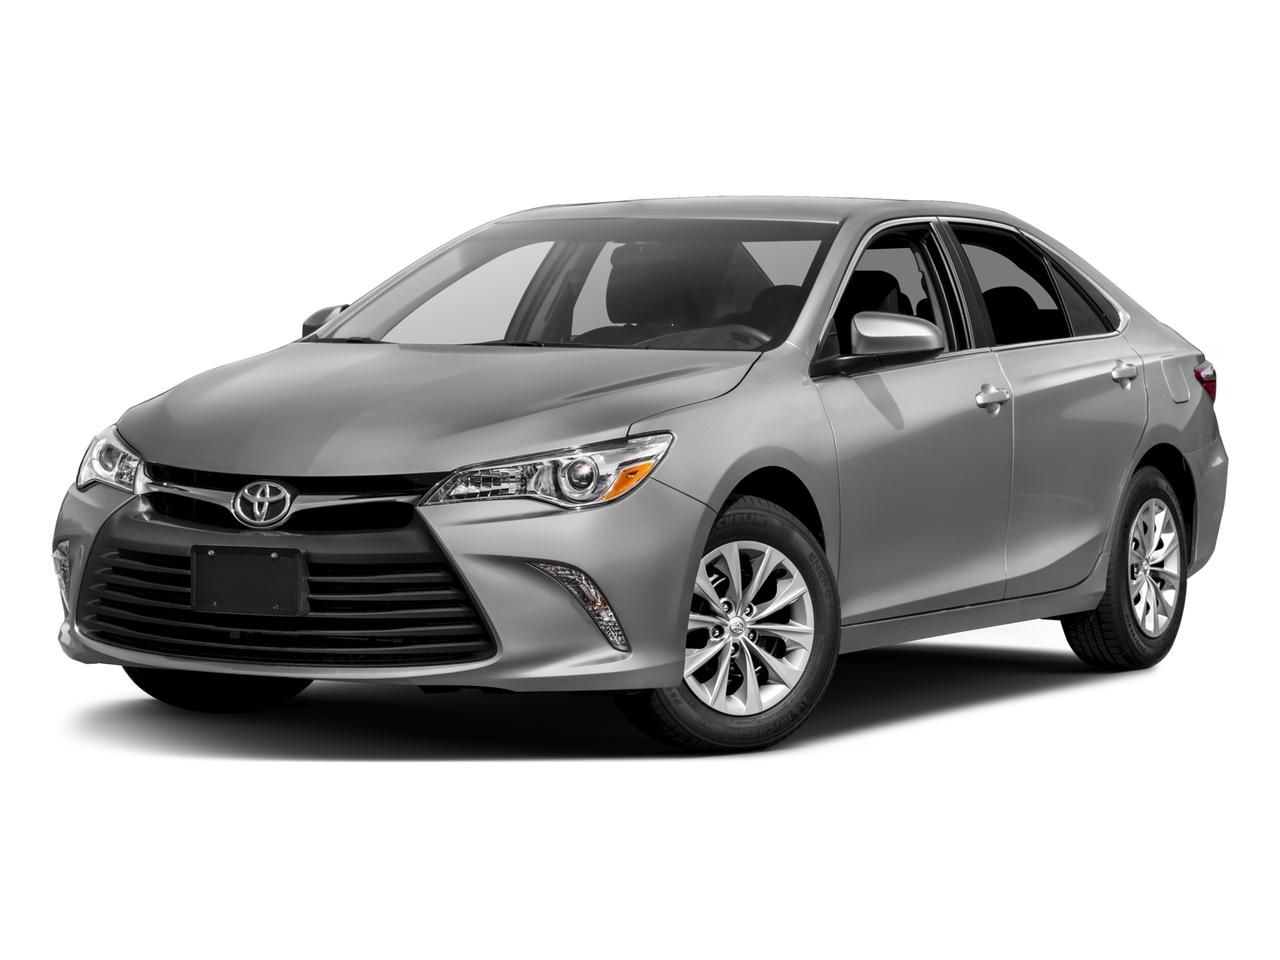 2016 Toyota Camry Vehicle Photo in Melbourne, FL 32901